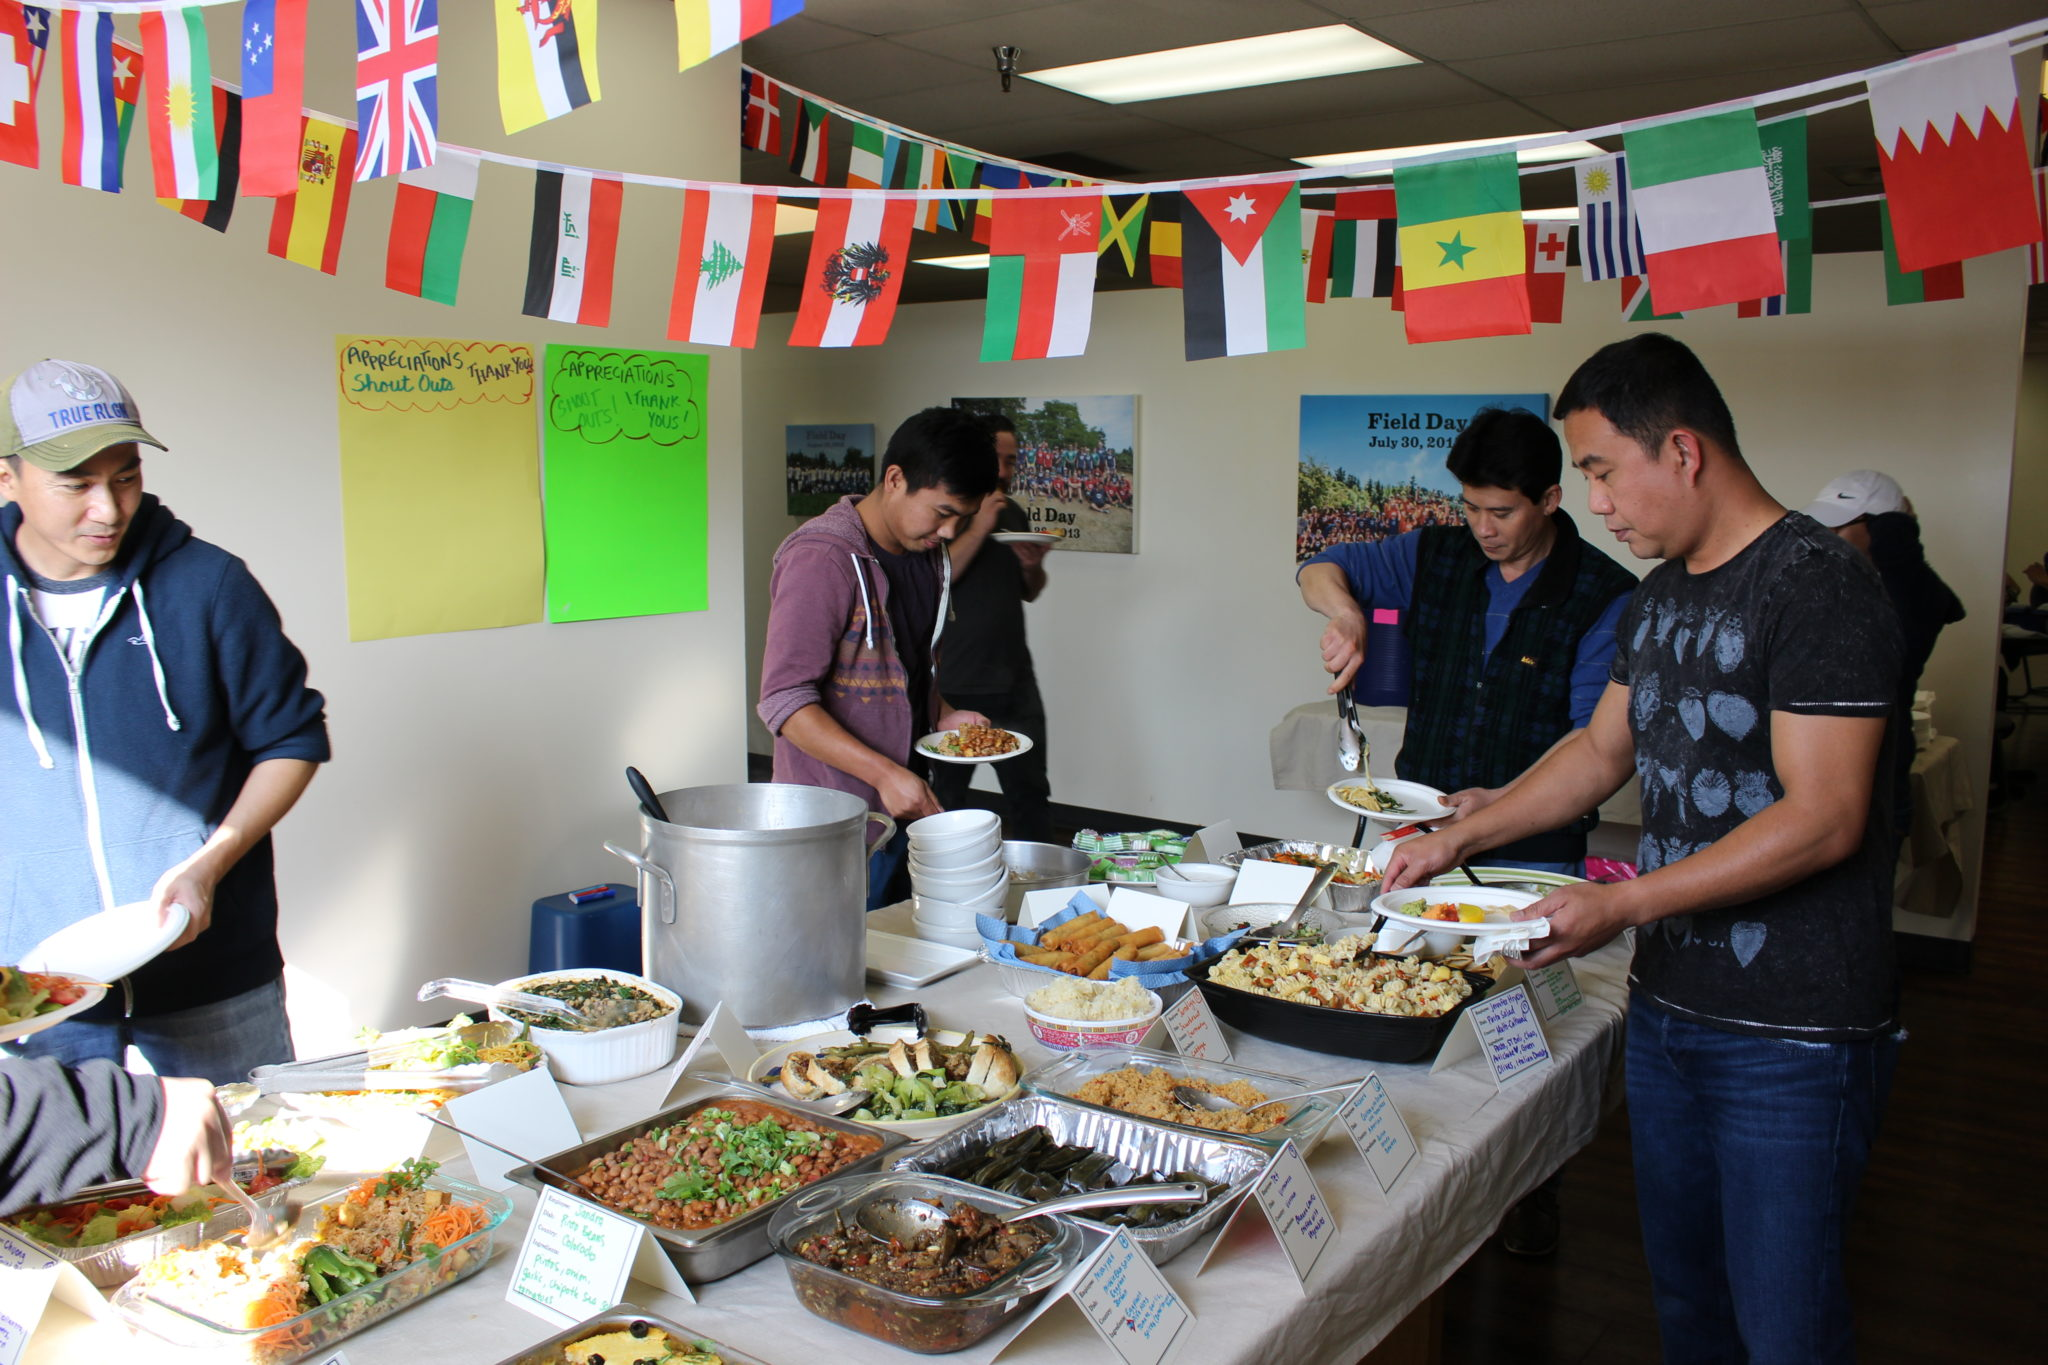 World Vegetarian Day Community Potluck